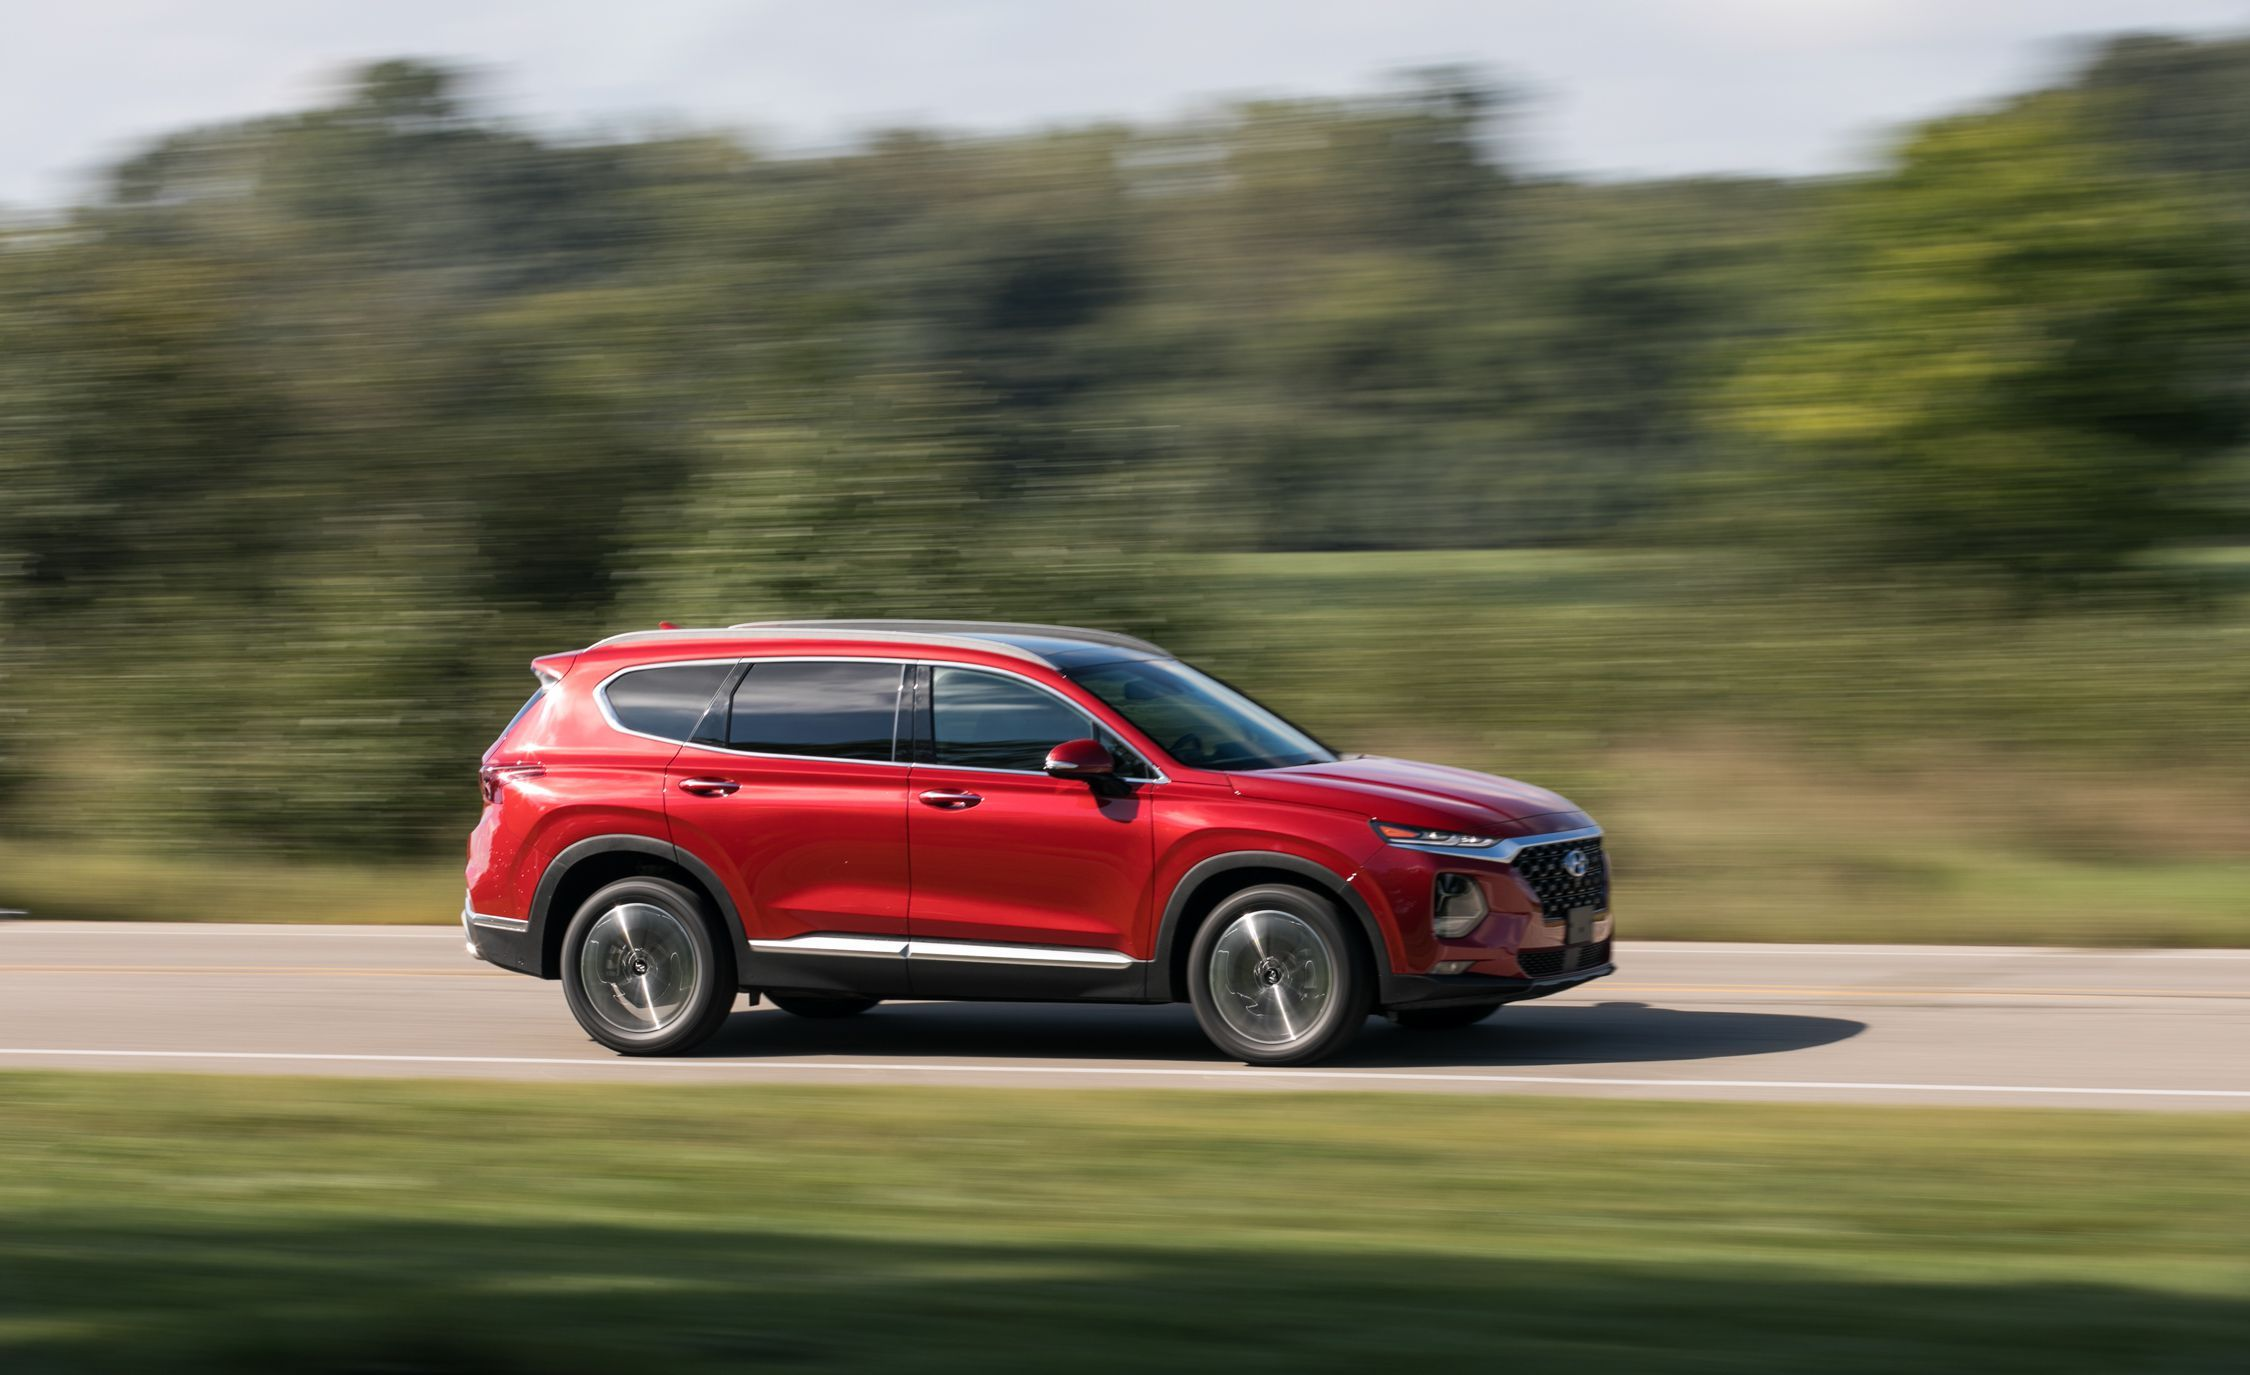 2019 Hyundai Santa Fe Review Pricing And Specs